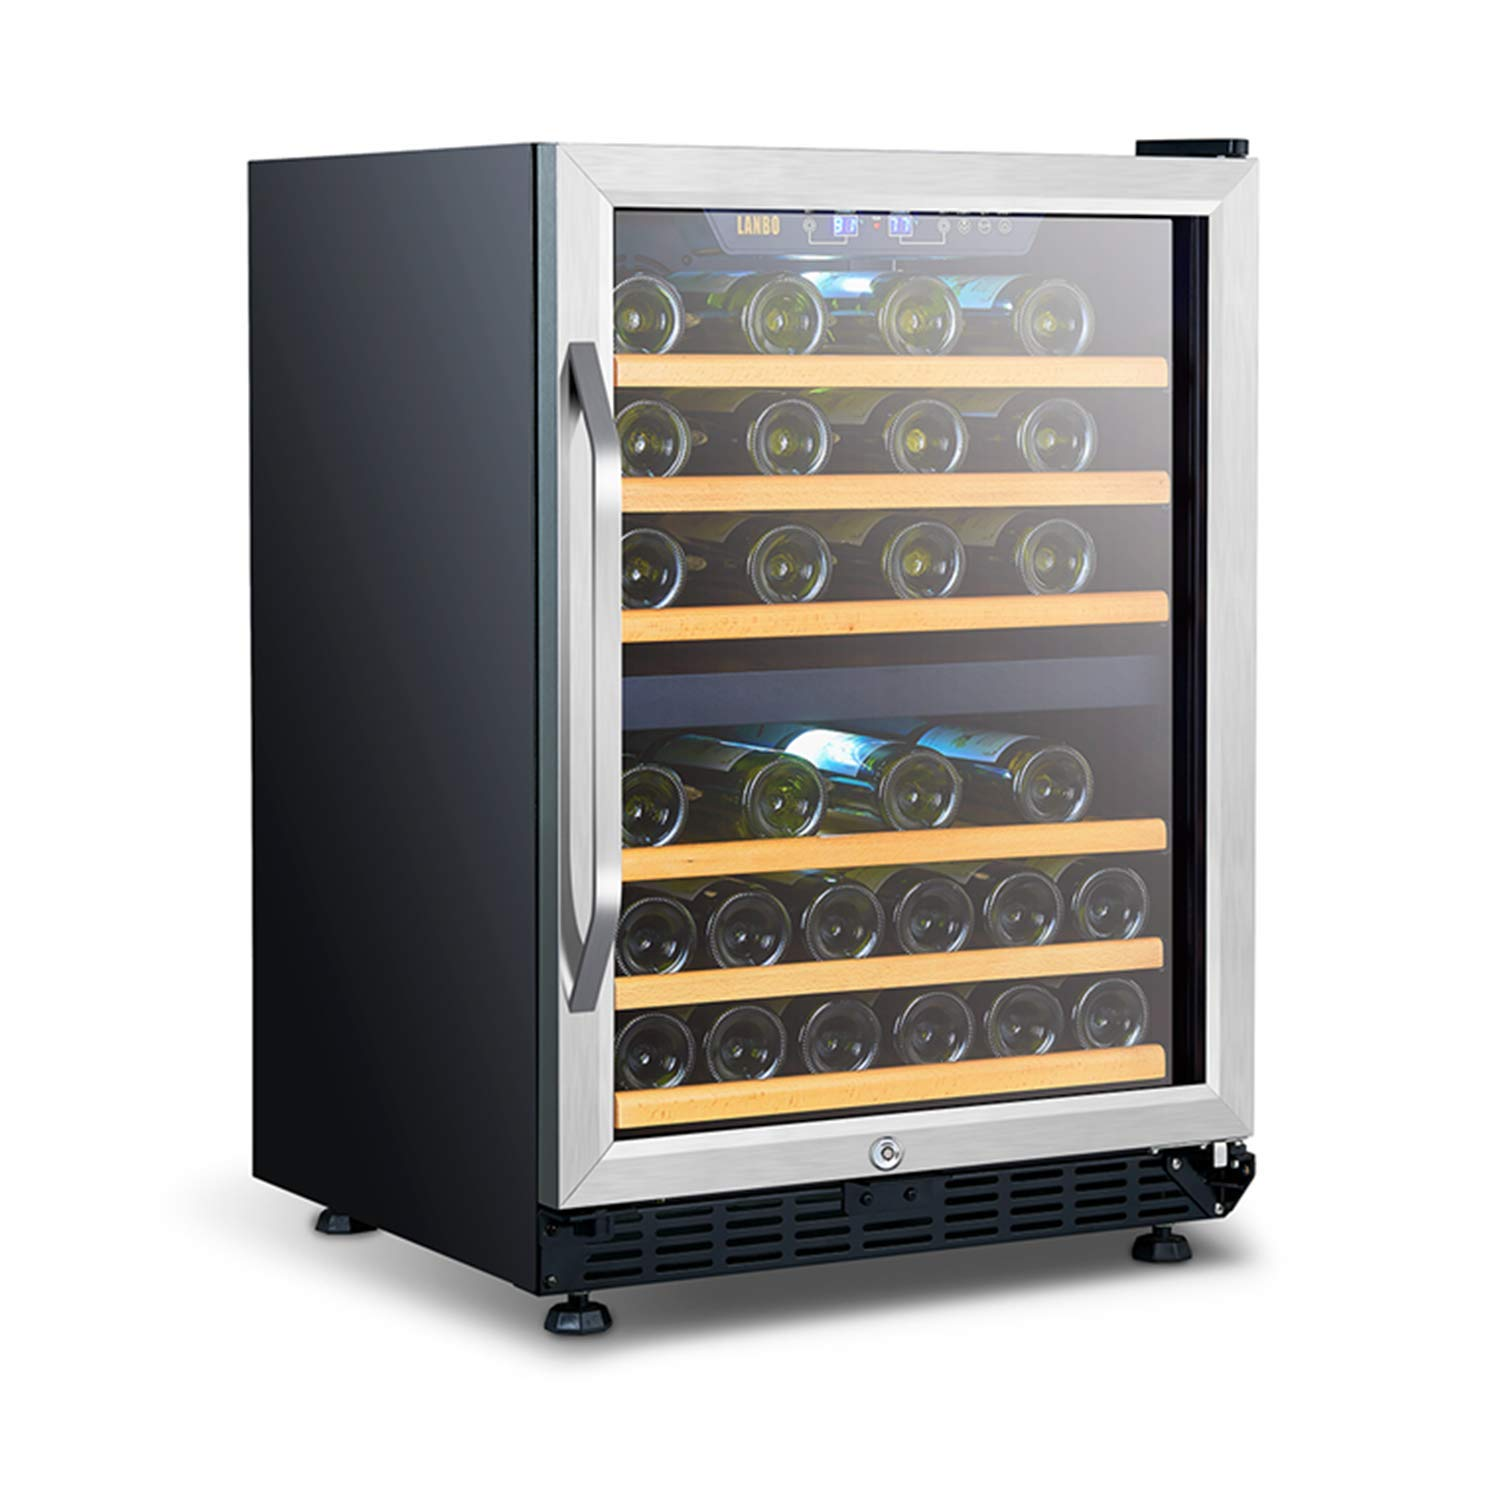 LANBO Dual Zone Wine Refrigerator, 46 Bottle Built-in Under Counter Compressor Wine Cooler, 24 Inch Wide